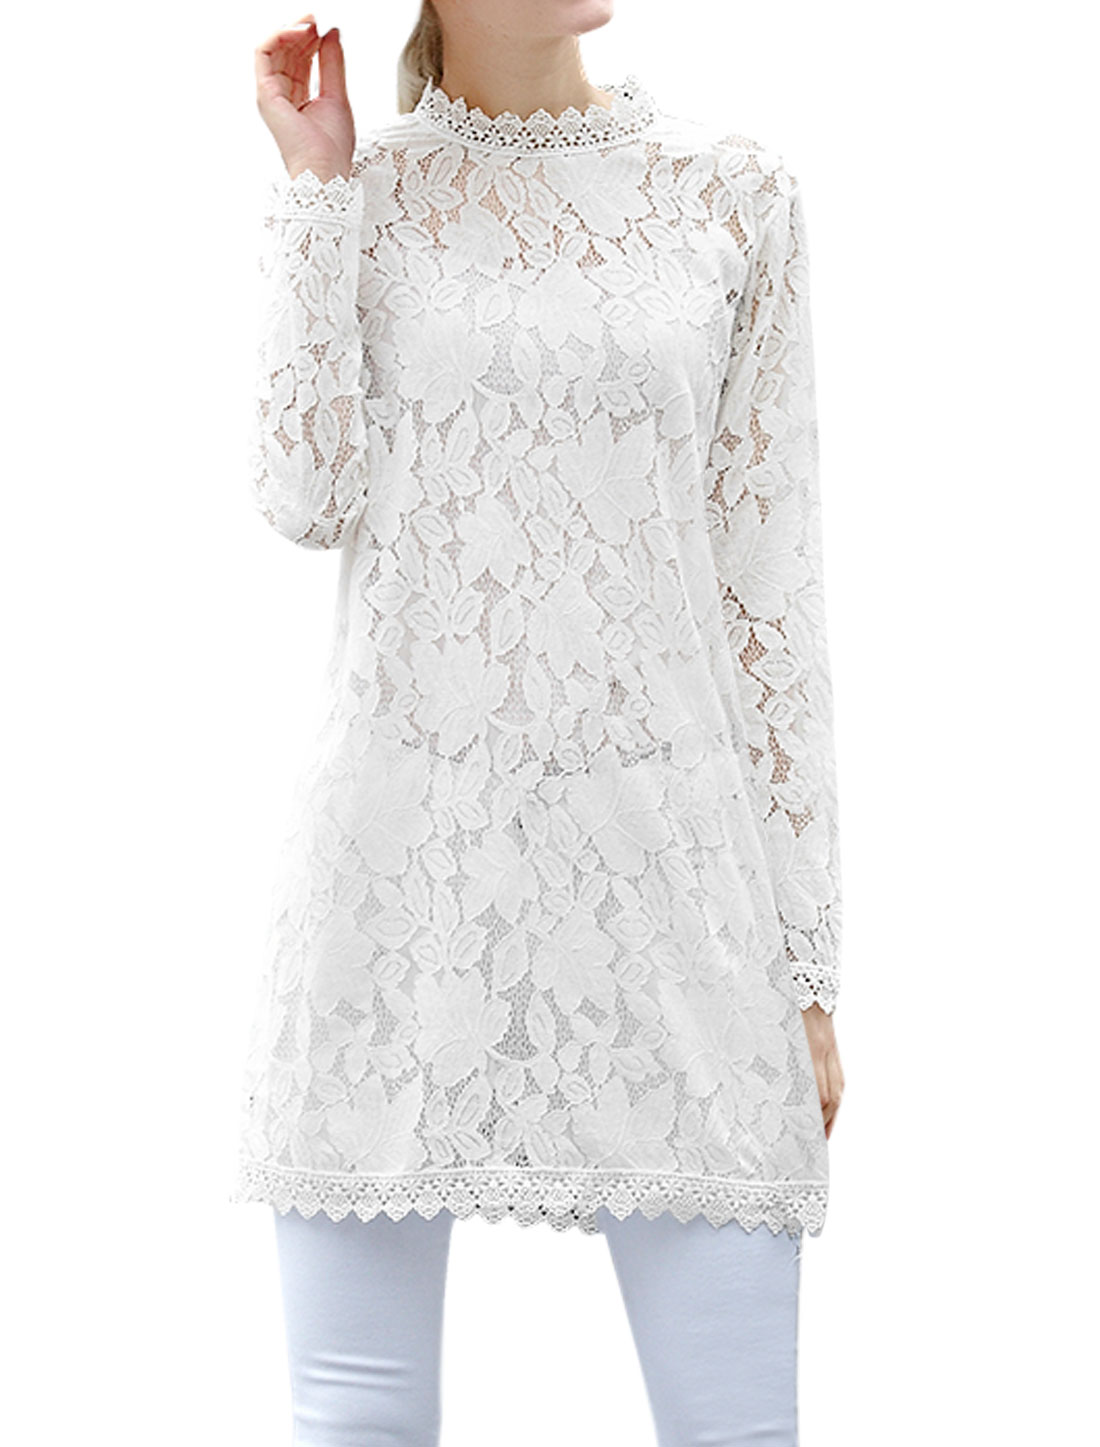 Women Crochet Panel See Through Lace Tunic Dress White L